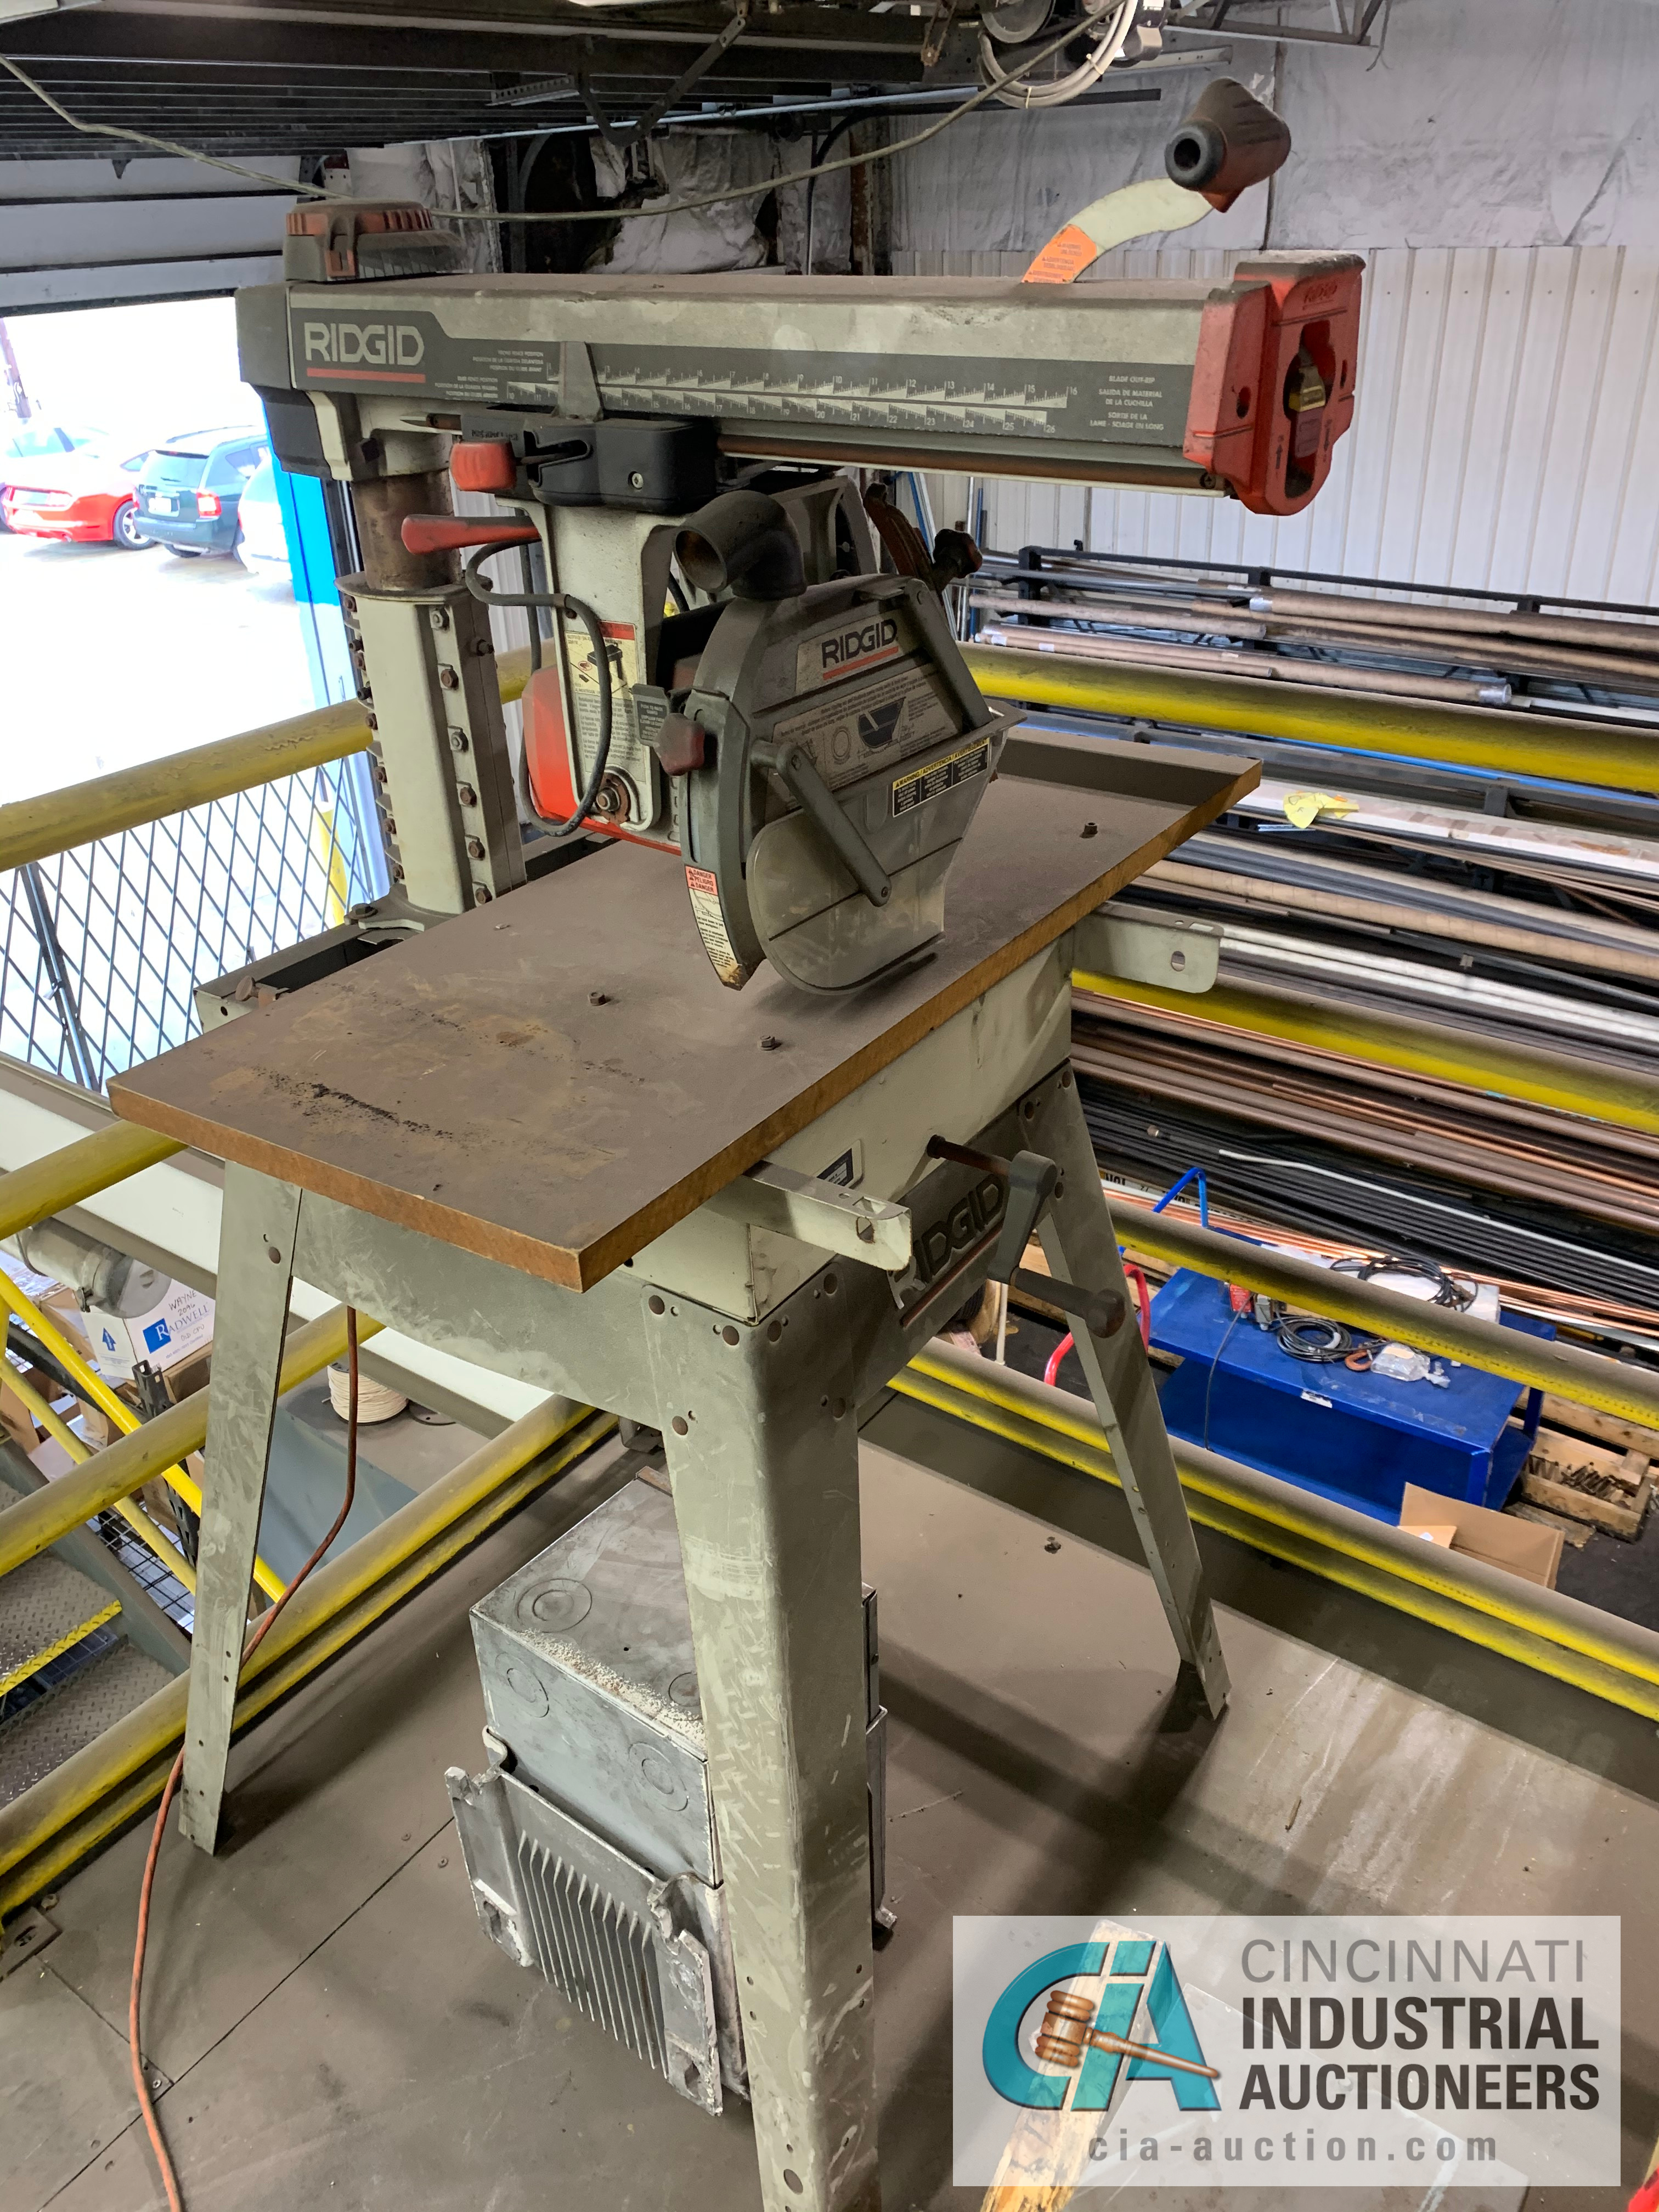 RIGID RS1000 RADIAL ARM SAW **RIGGING FEE DUE TO SHOEMAKER $50.00** - Image 3 of 3